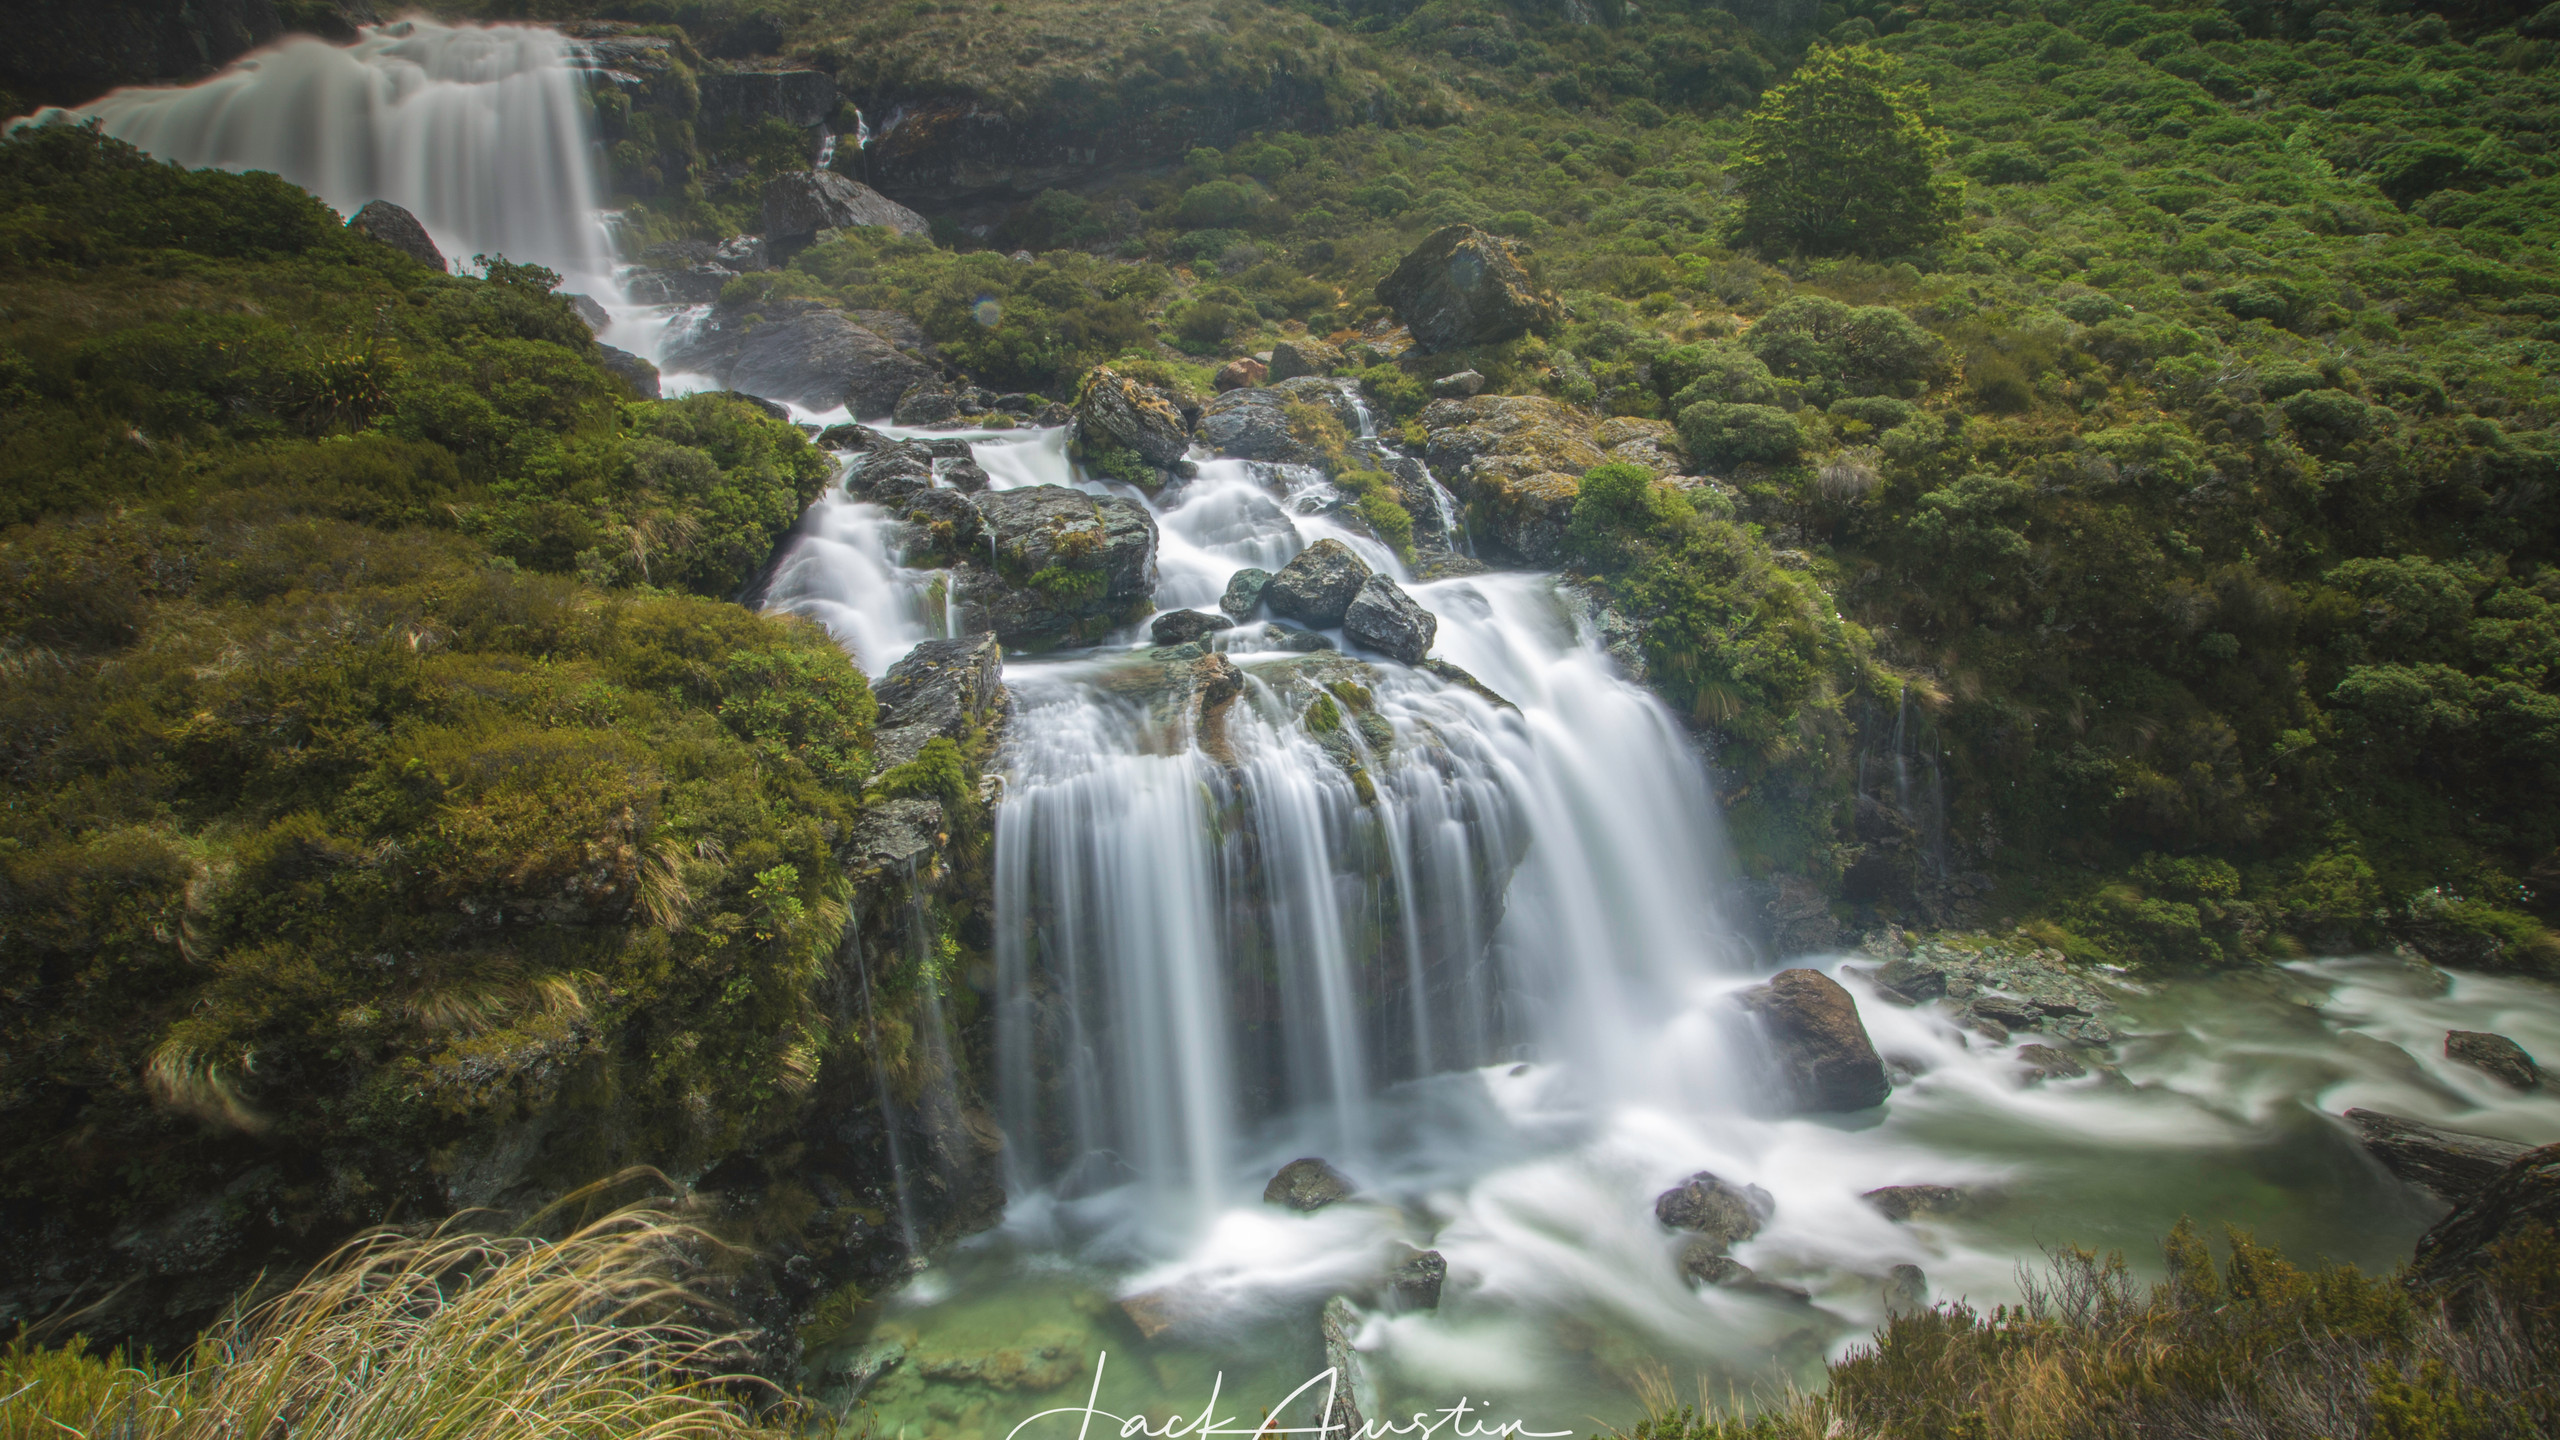 The Routeburn Falls